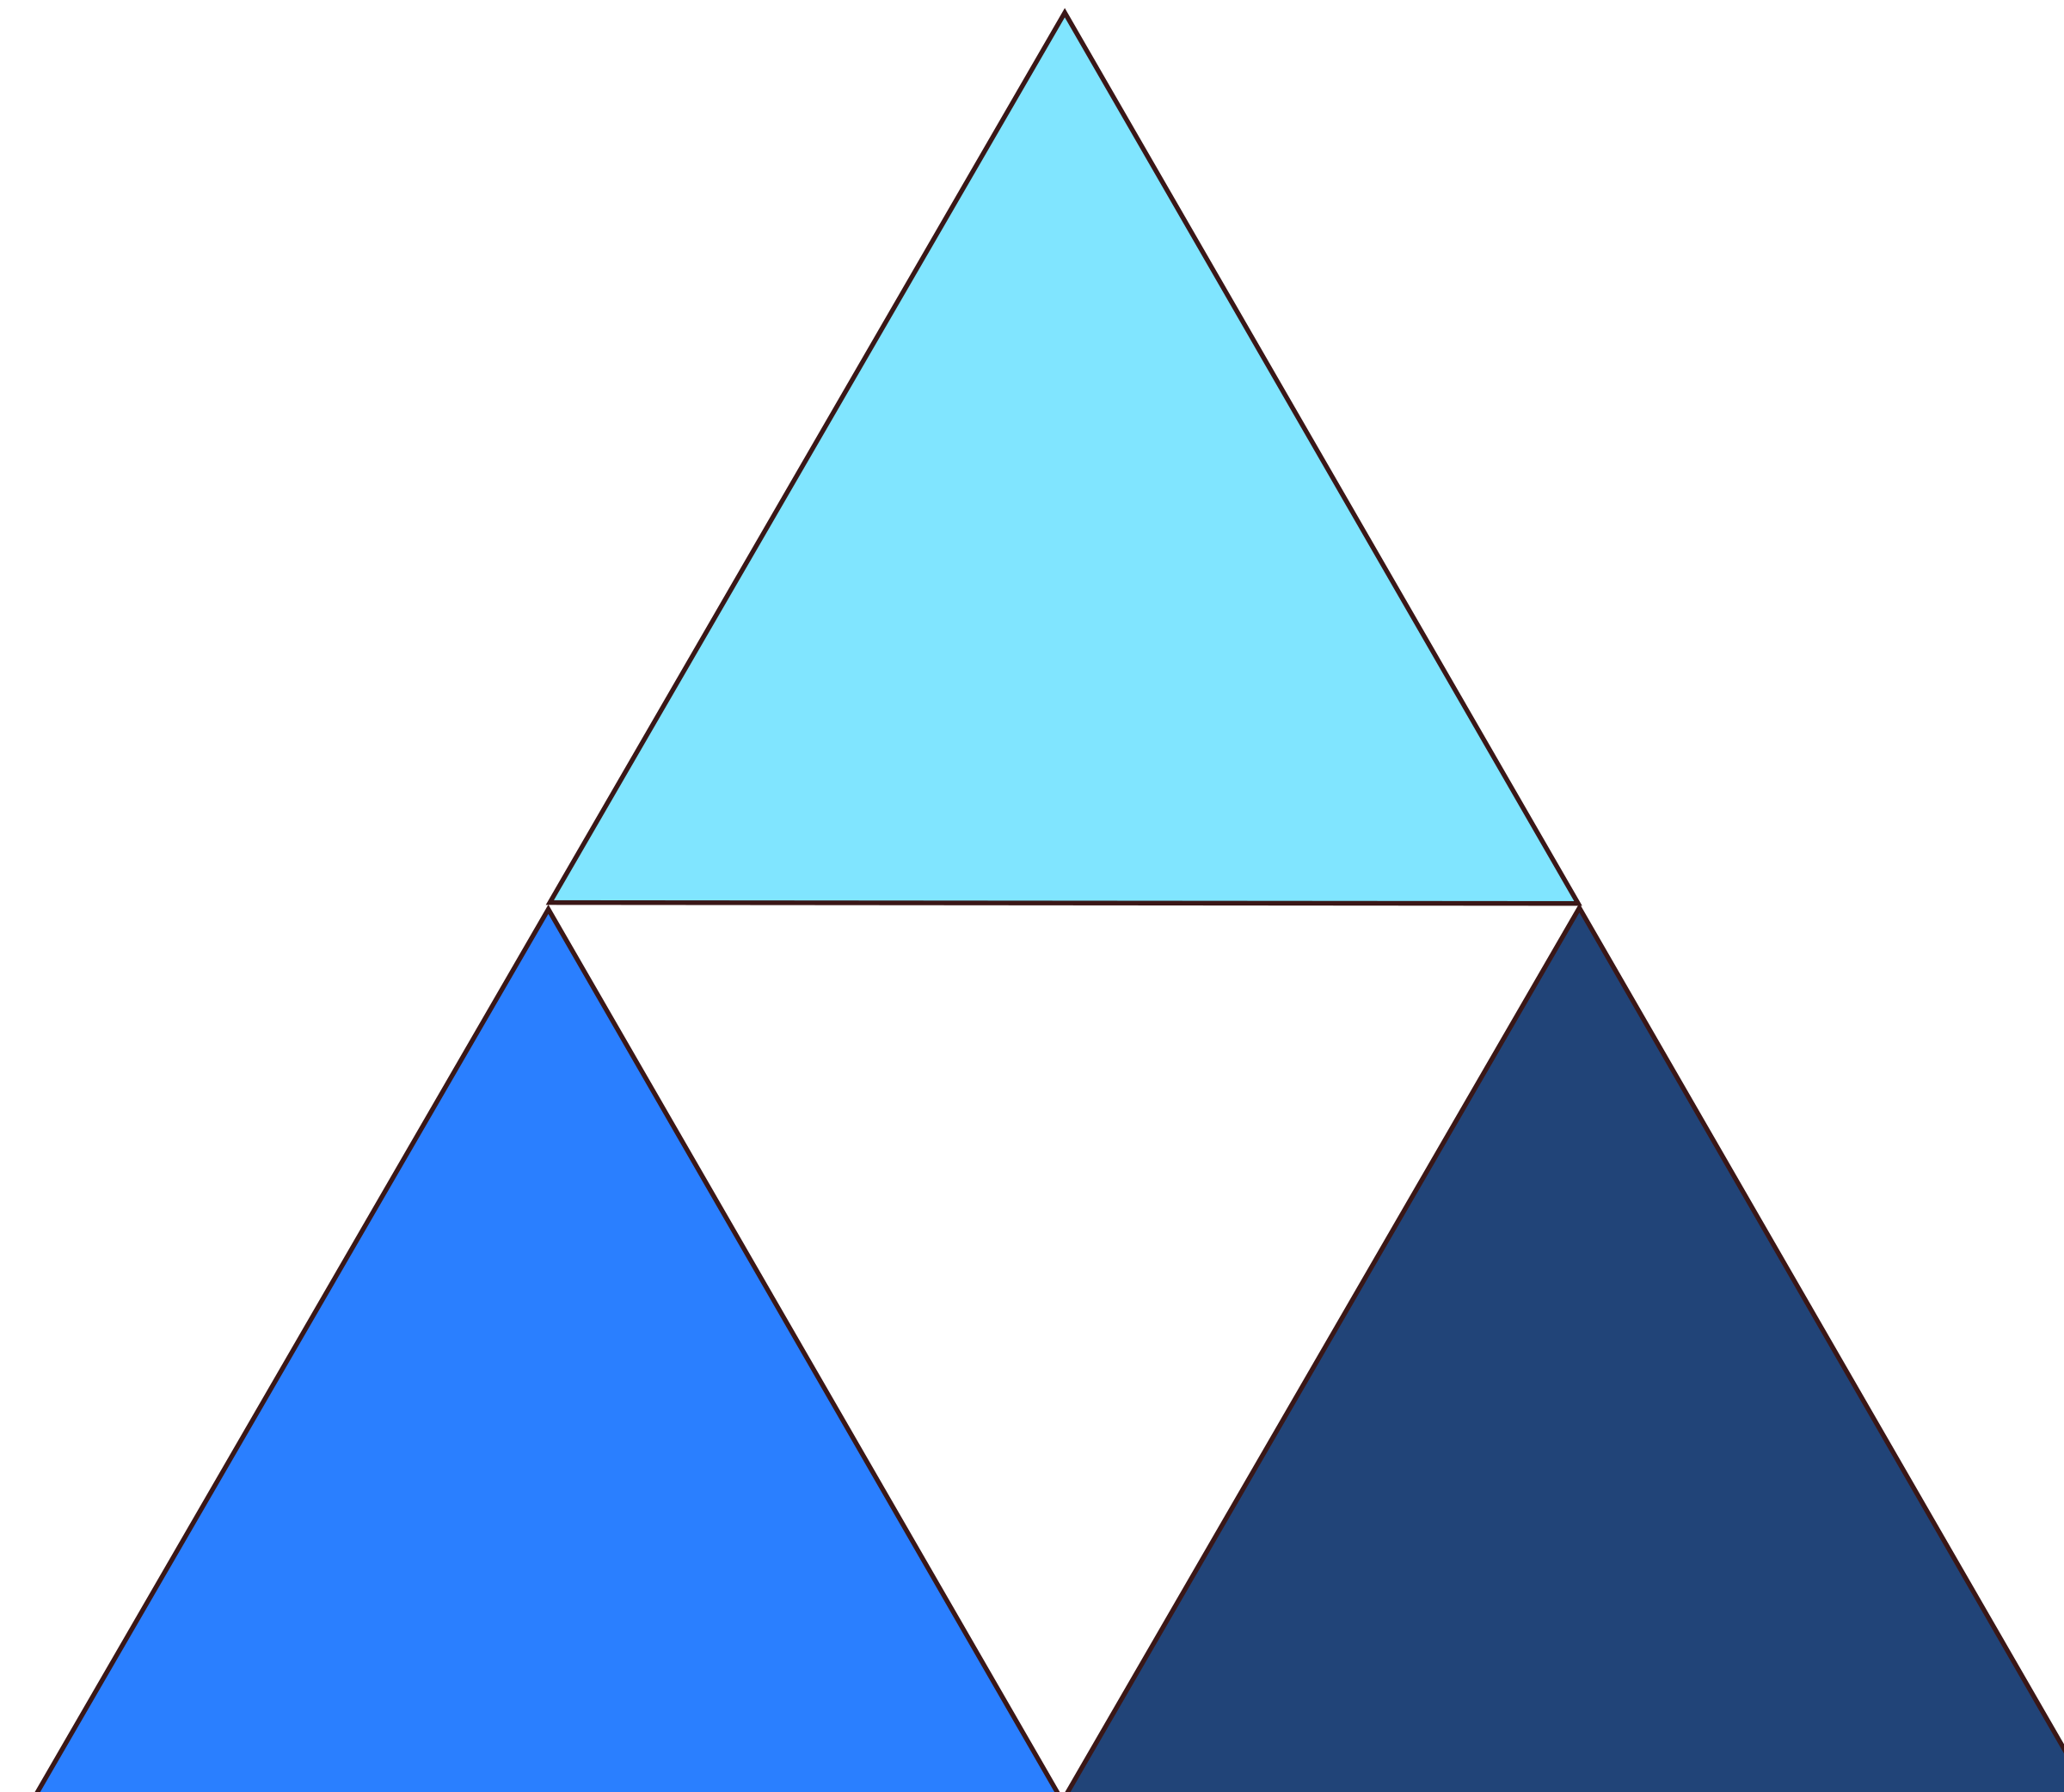 Triangulos png 4 » PNG Image.